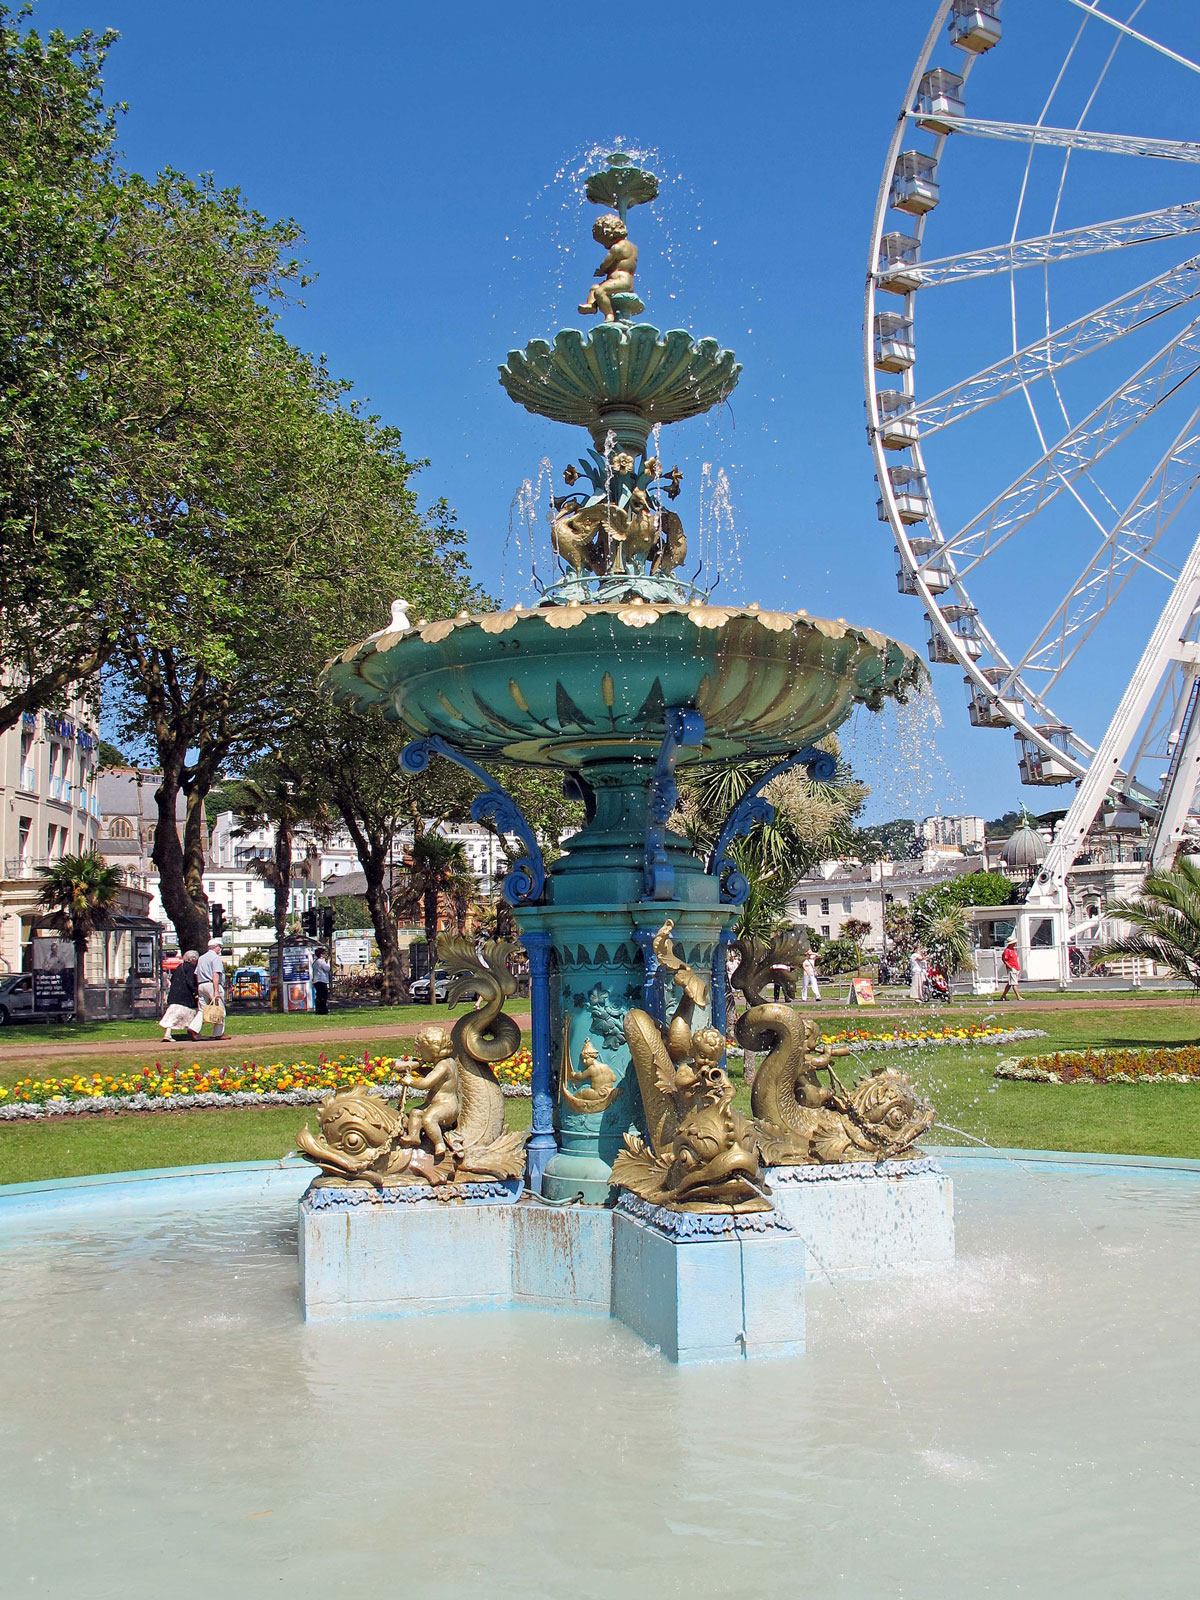 The Fountain in Princess Gardens